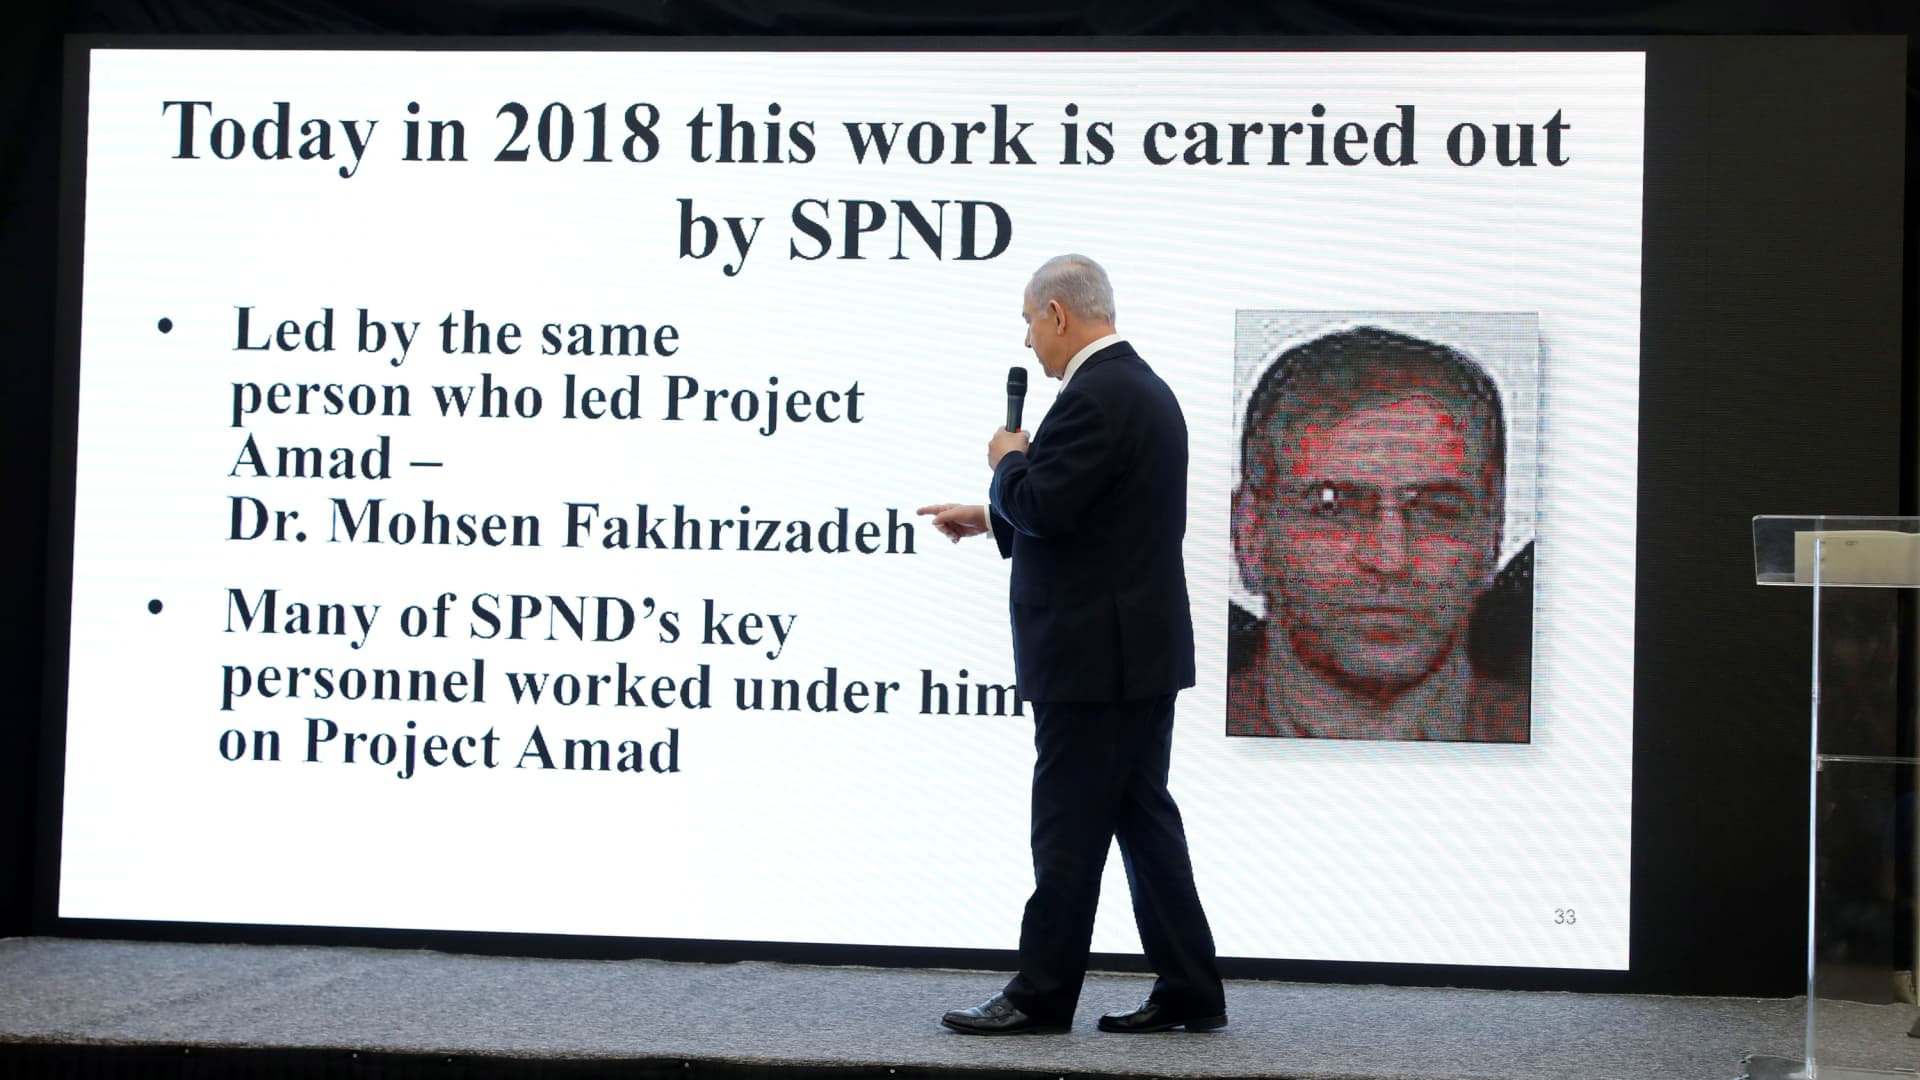 Israeli Prime Minister Benjamin Netanyahu points at a screen with an image of Iranian nuclear scientist Mohsen Fakhrizadeh during a news conference at the Ministry of Defence in Tel Aviv, Israel, April 30, 2018.